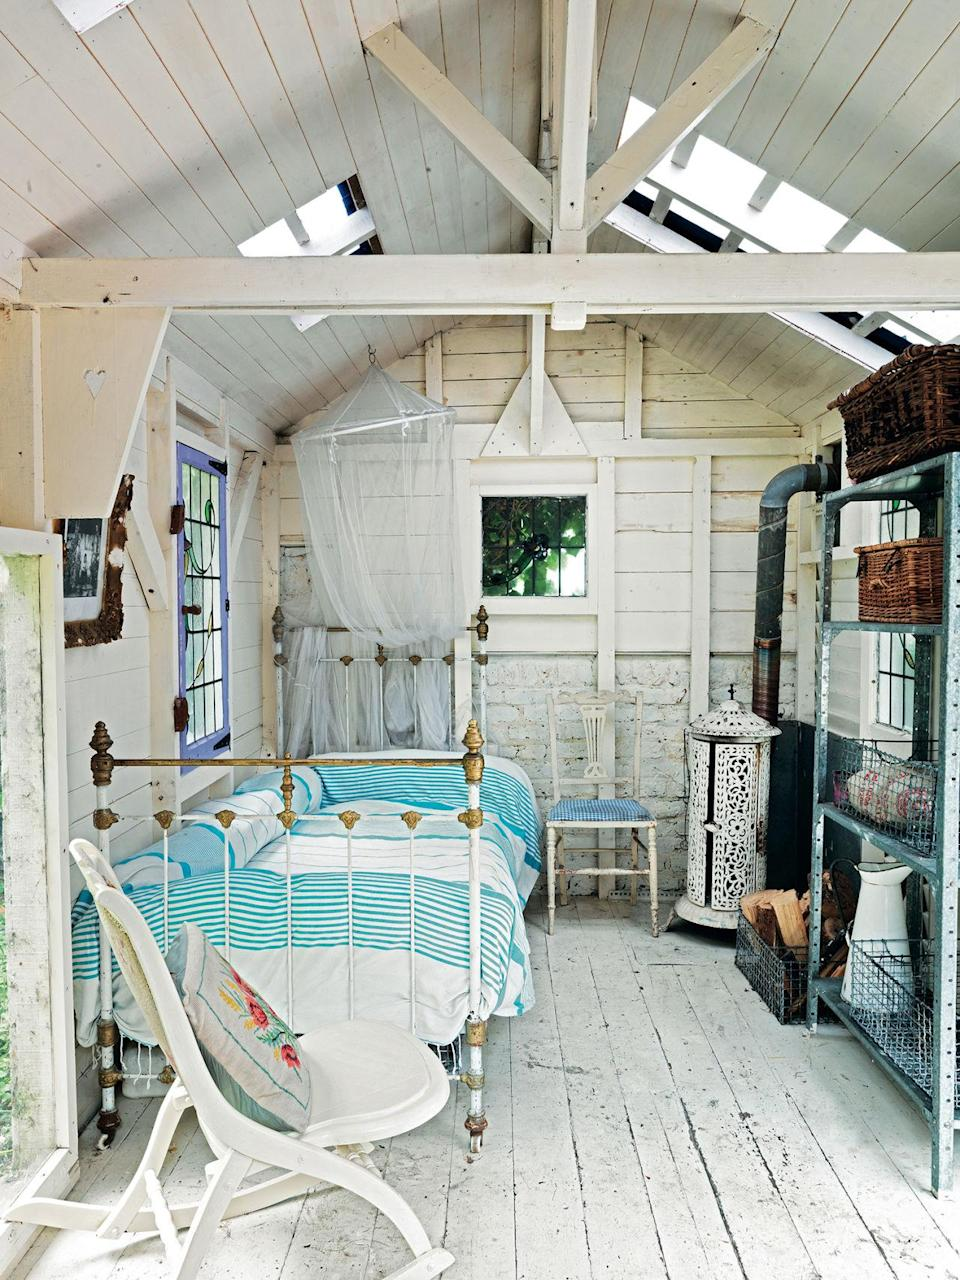 <p>When decorating a hideaway, it can be fun to opt for a more rustic scheme than your main home. A floor in brick, board or tiles is practical but can be offset with comfortable upholstered furniture, textiles and fabrics. If the interior is boarded, you can create different looks by painting it and introducing artworks or shelving, plus cupboards for storage. Or create a working area with a desk and chair or a potting bench to make a space for relaxing, as well as propagating and raising plants. <br></p>